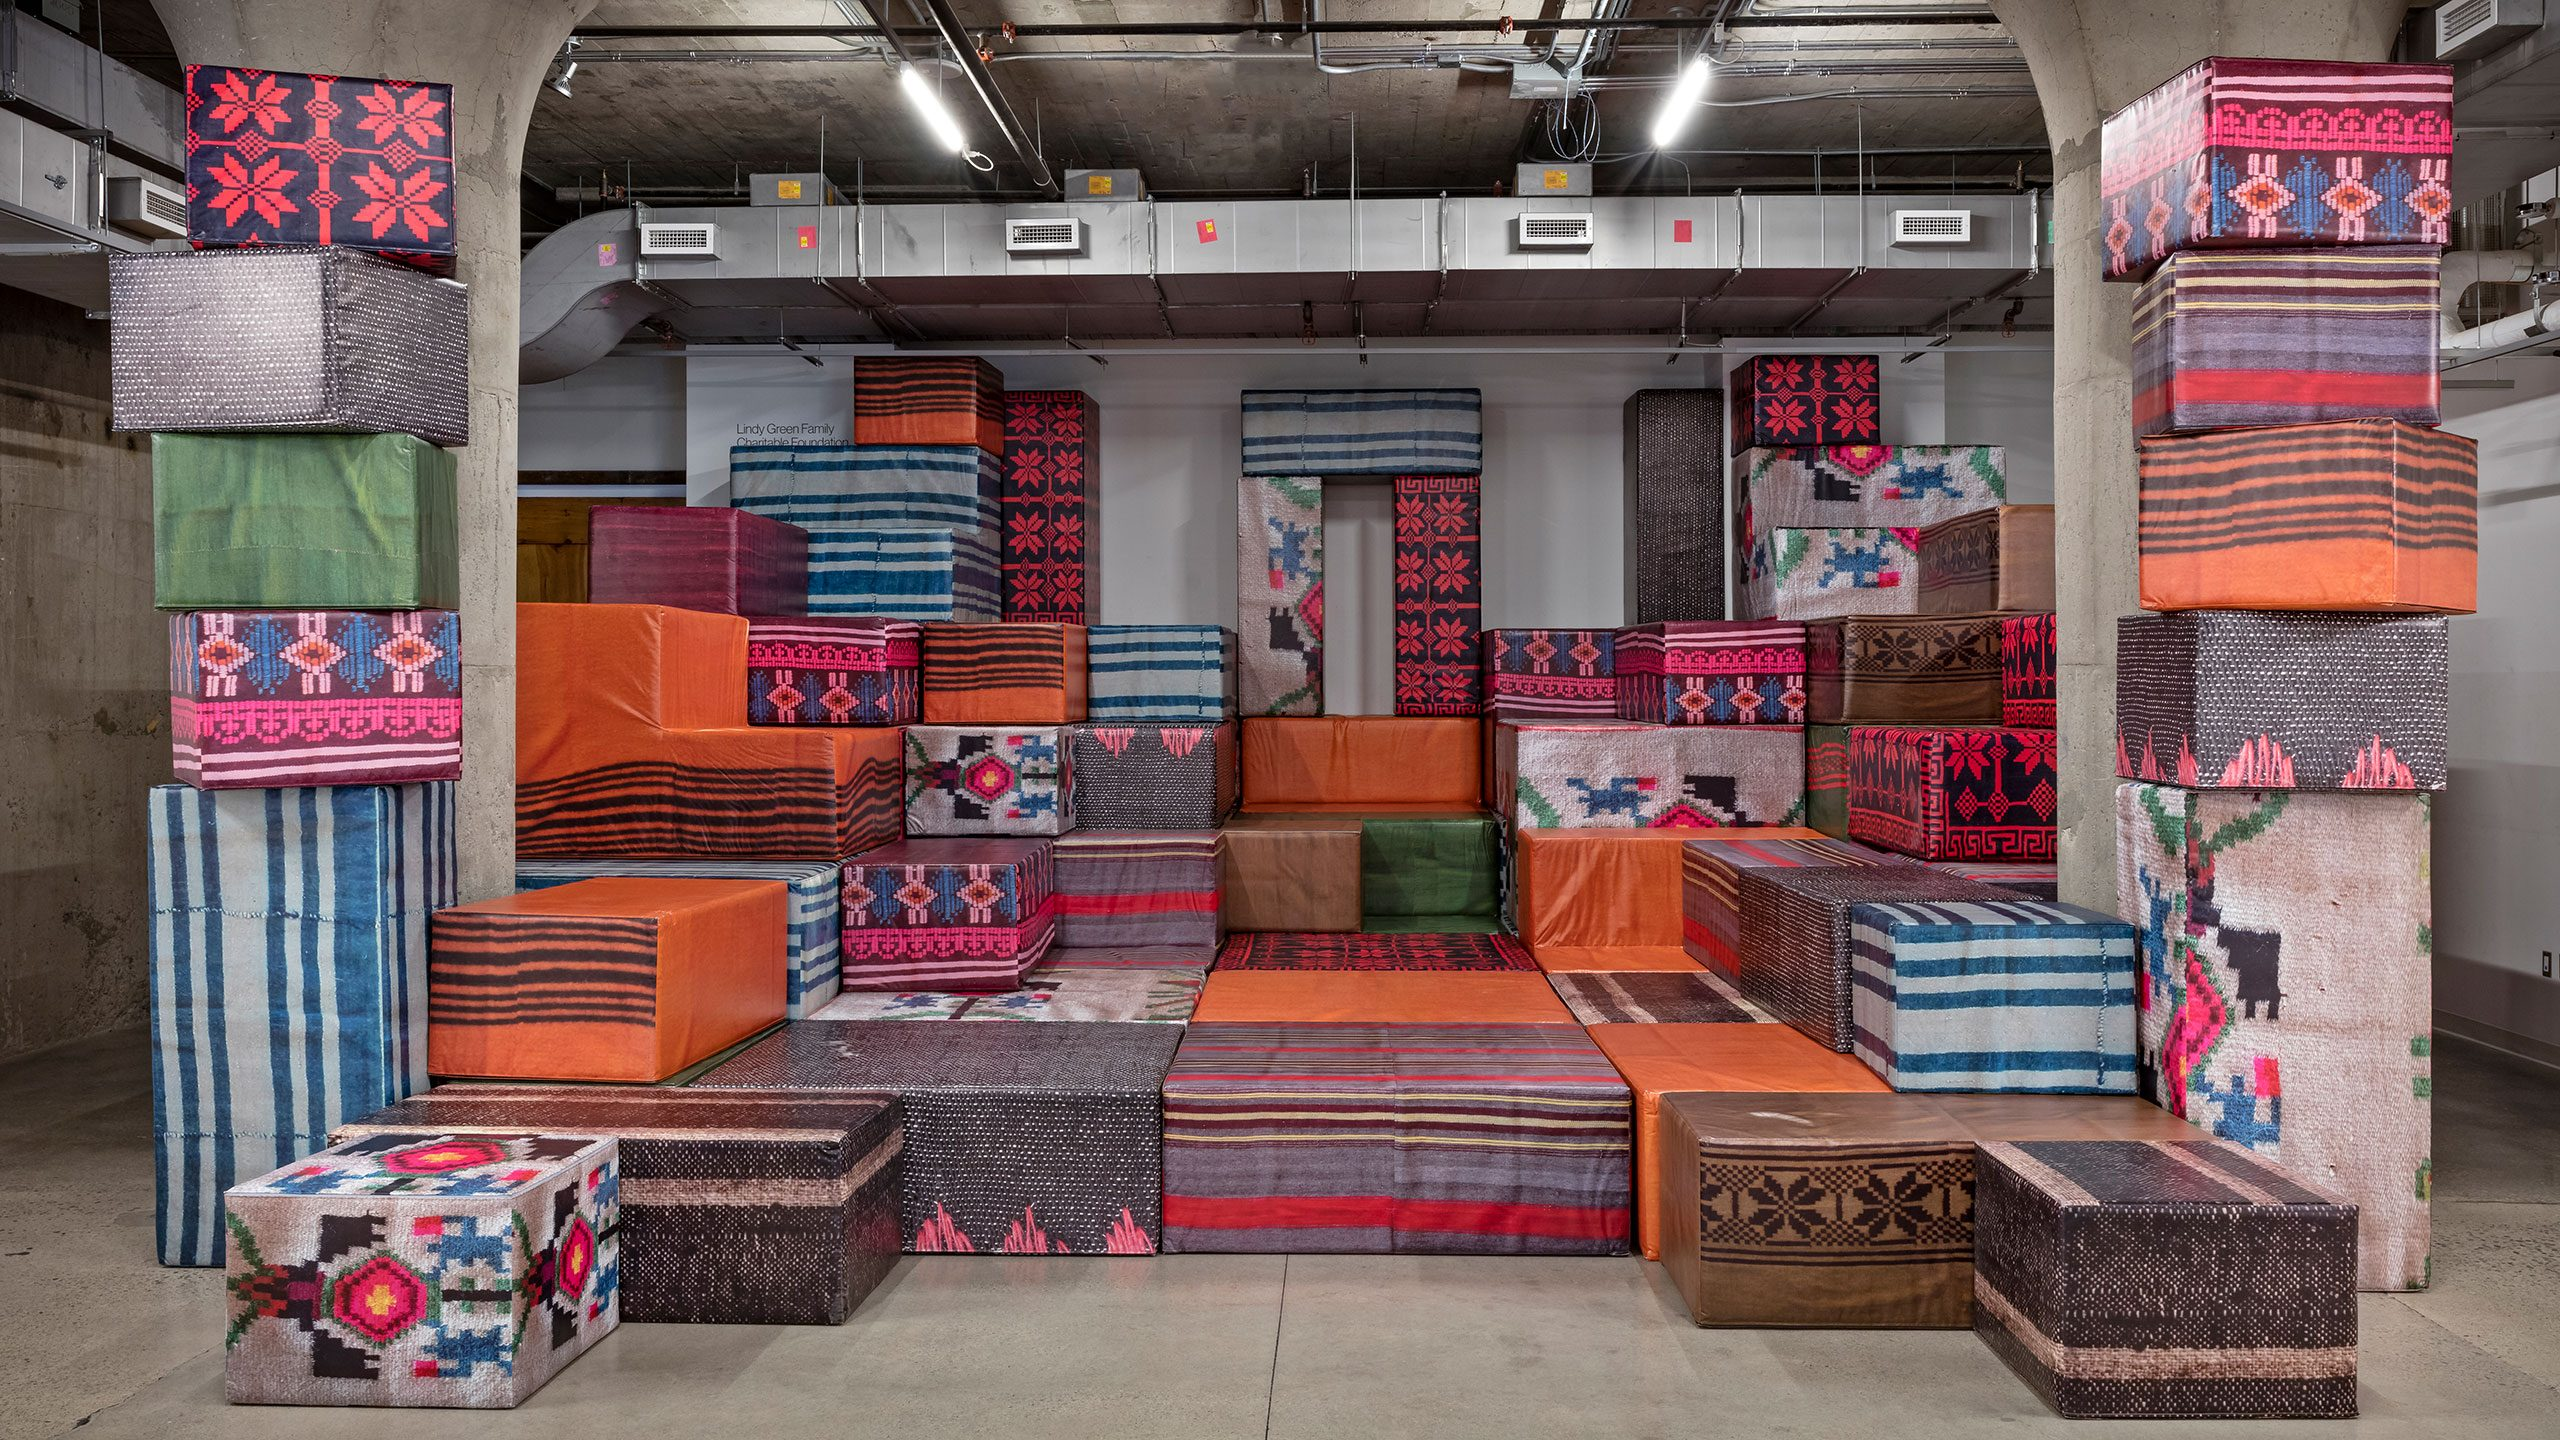 5 Heimtextil Trends 2020 To Watch - Multi Local -2-Eclectic Trends